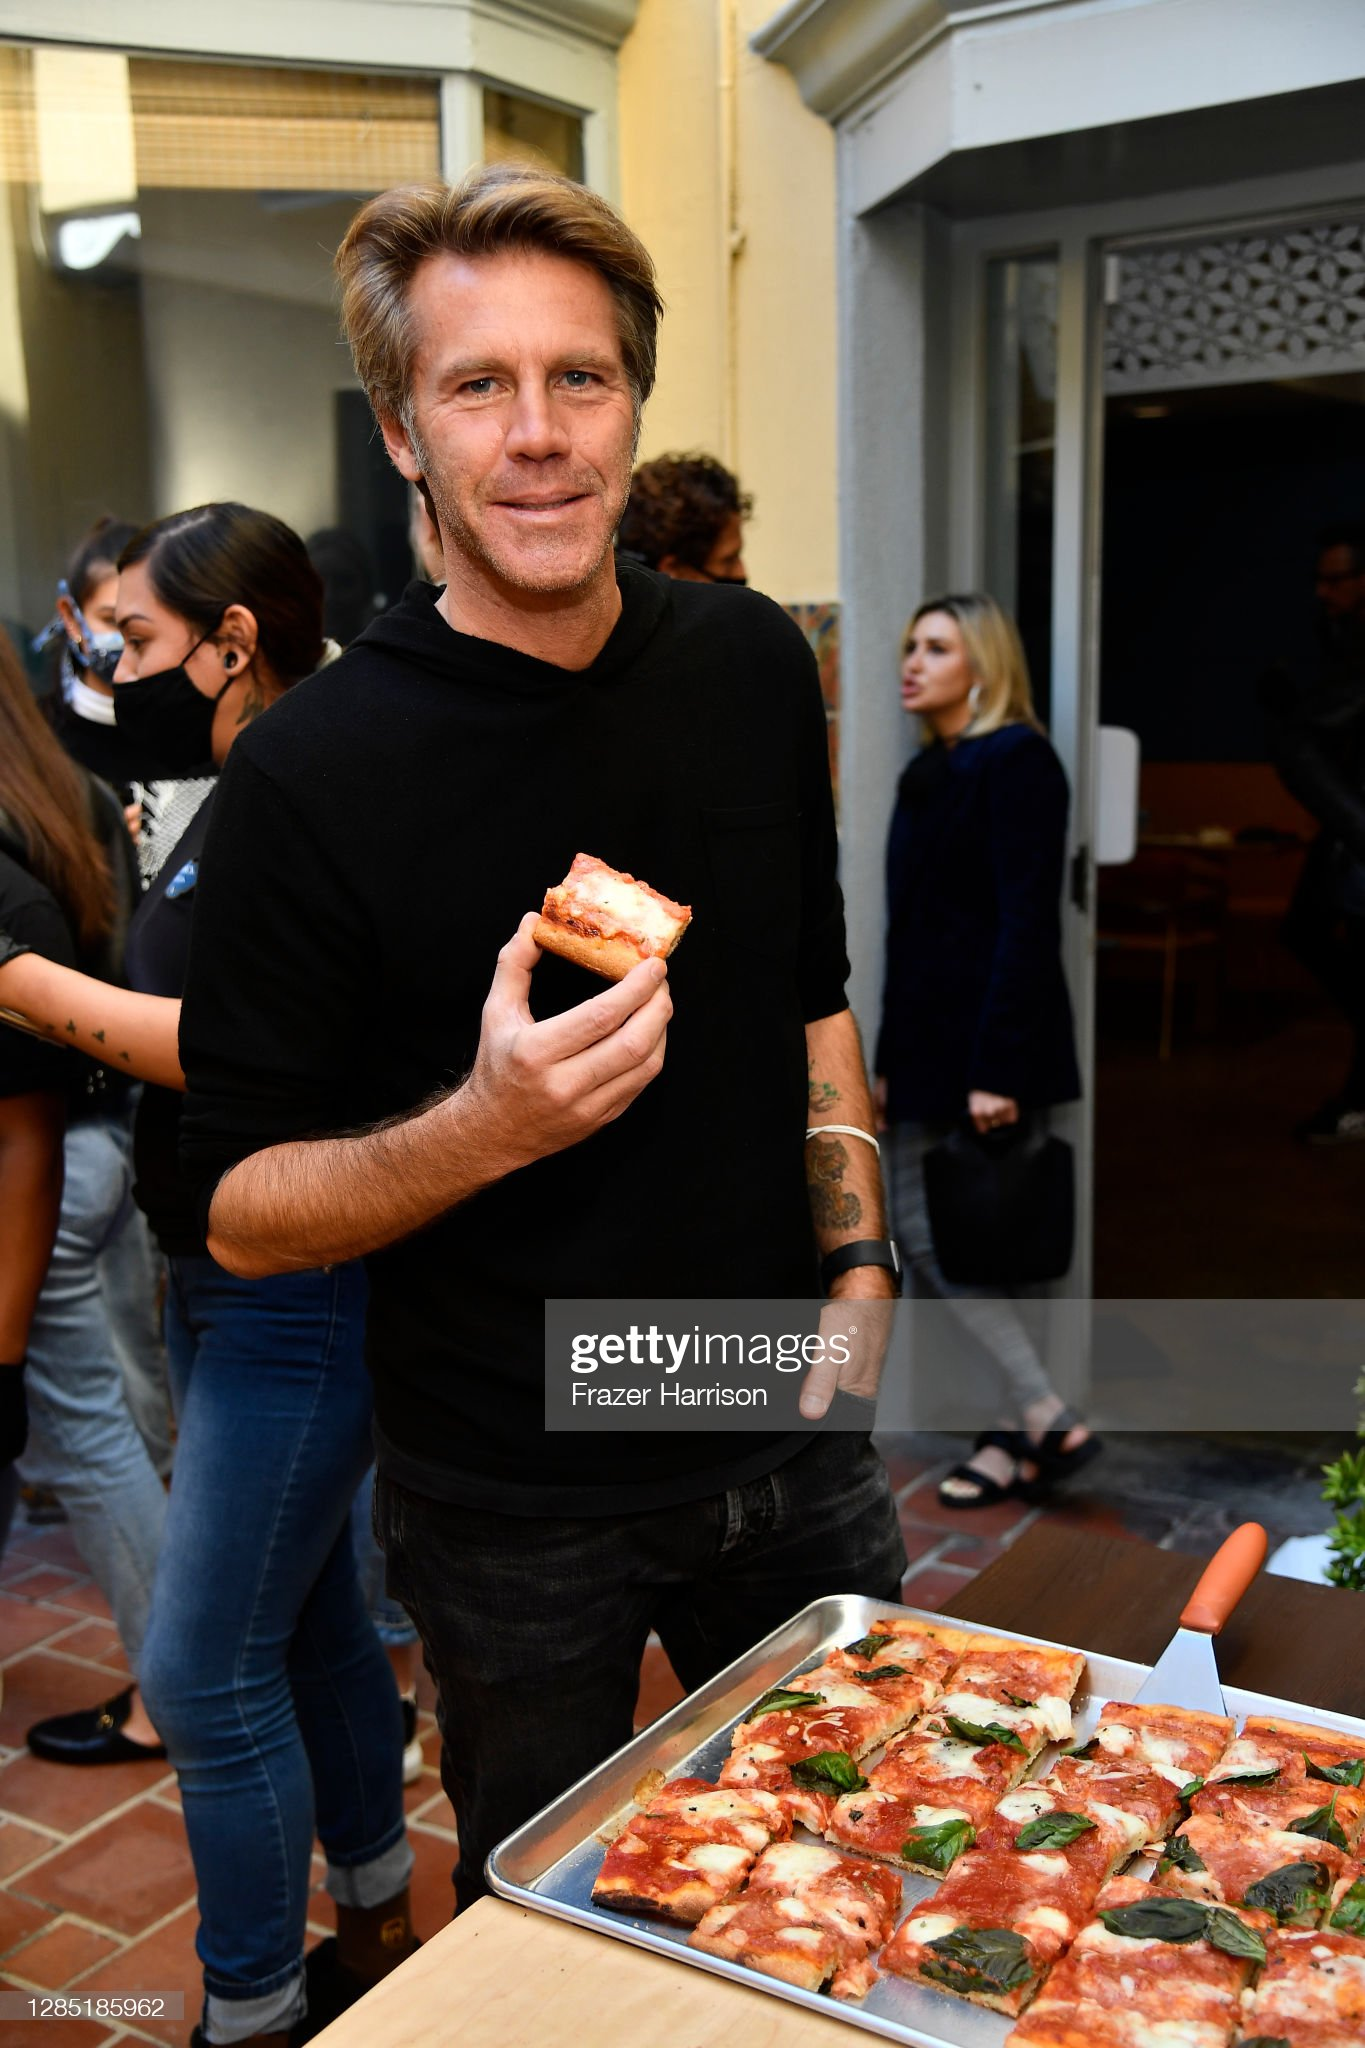 https://media.gettyimages.com/photos/prince-emanuele-filiberto-of-savoy-prince-of-venice-hosts-a-vip-for-picture-id1285185962?s=2048x2048